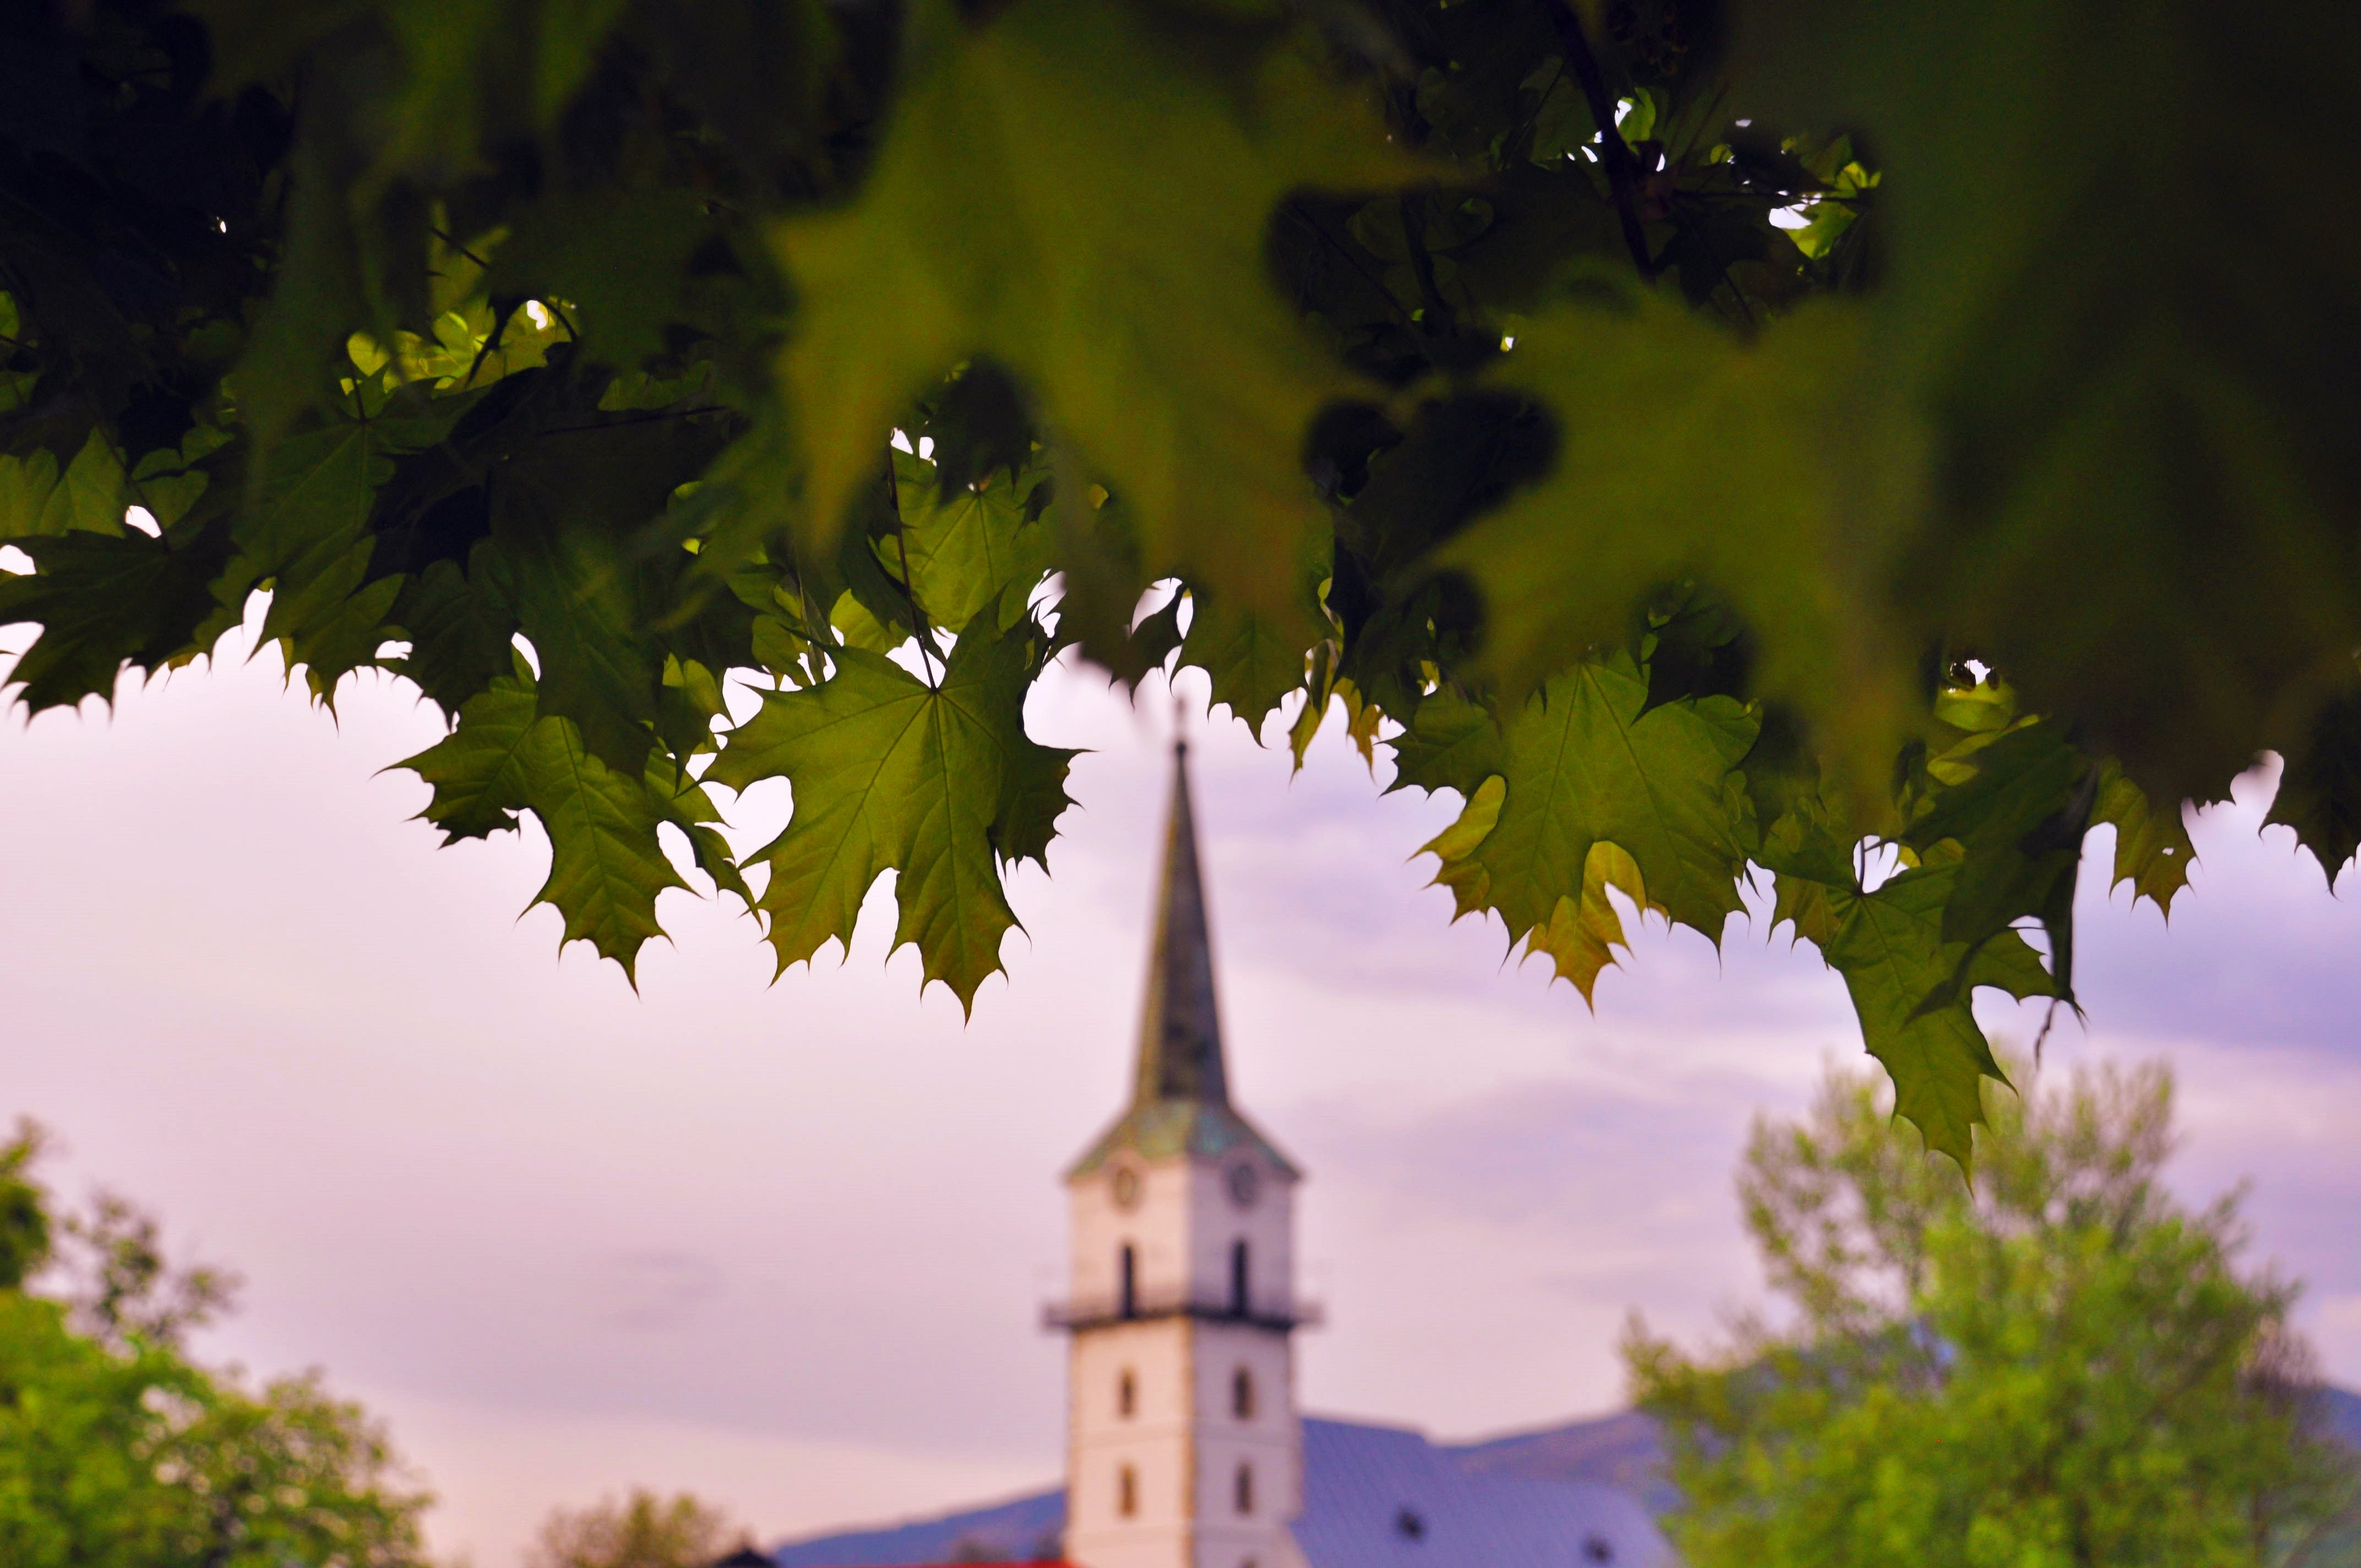 Tower Near Green Leafed Tree